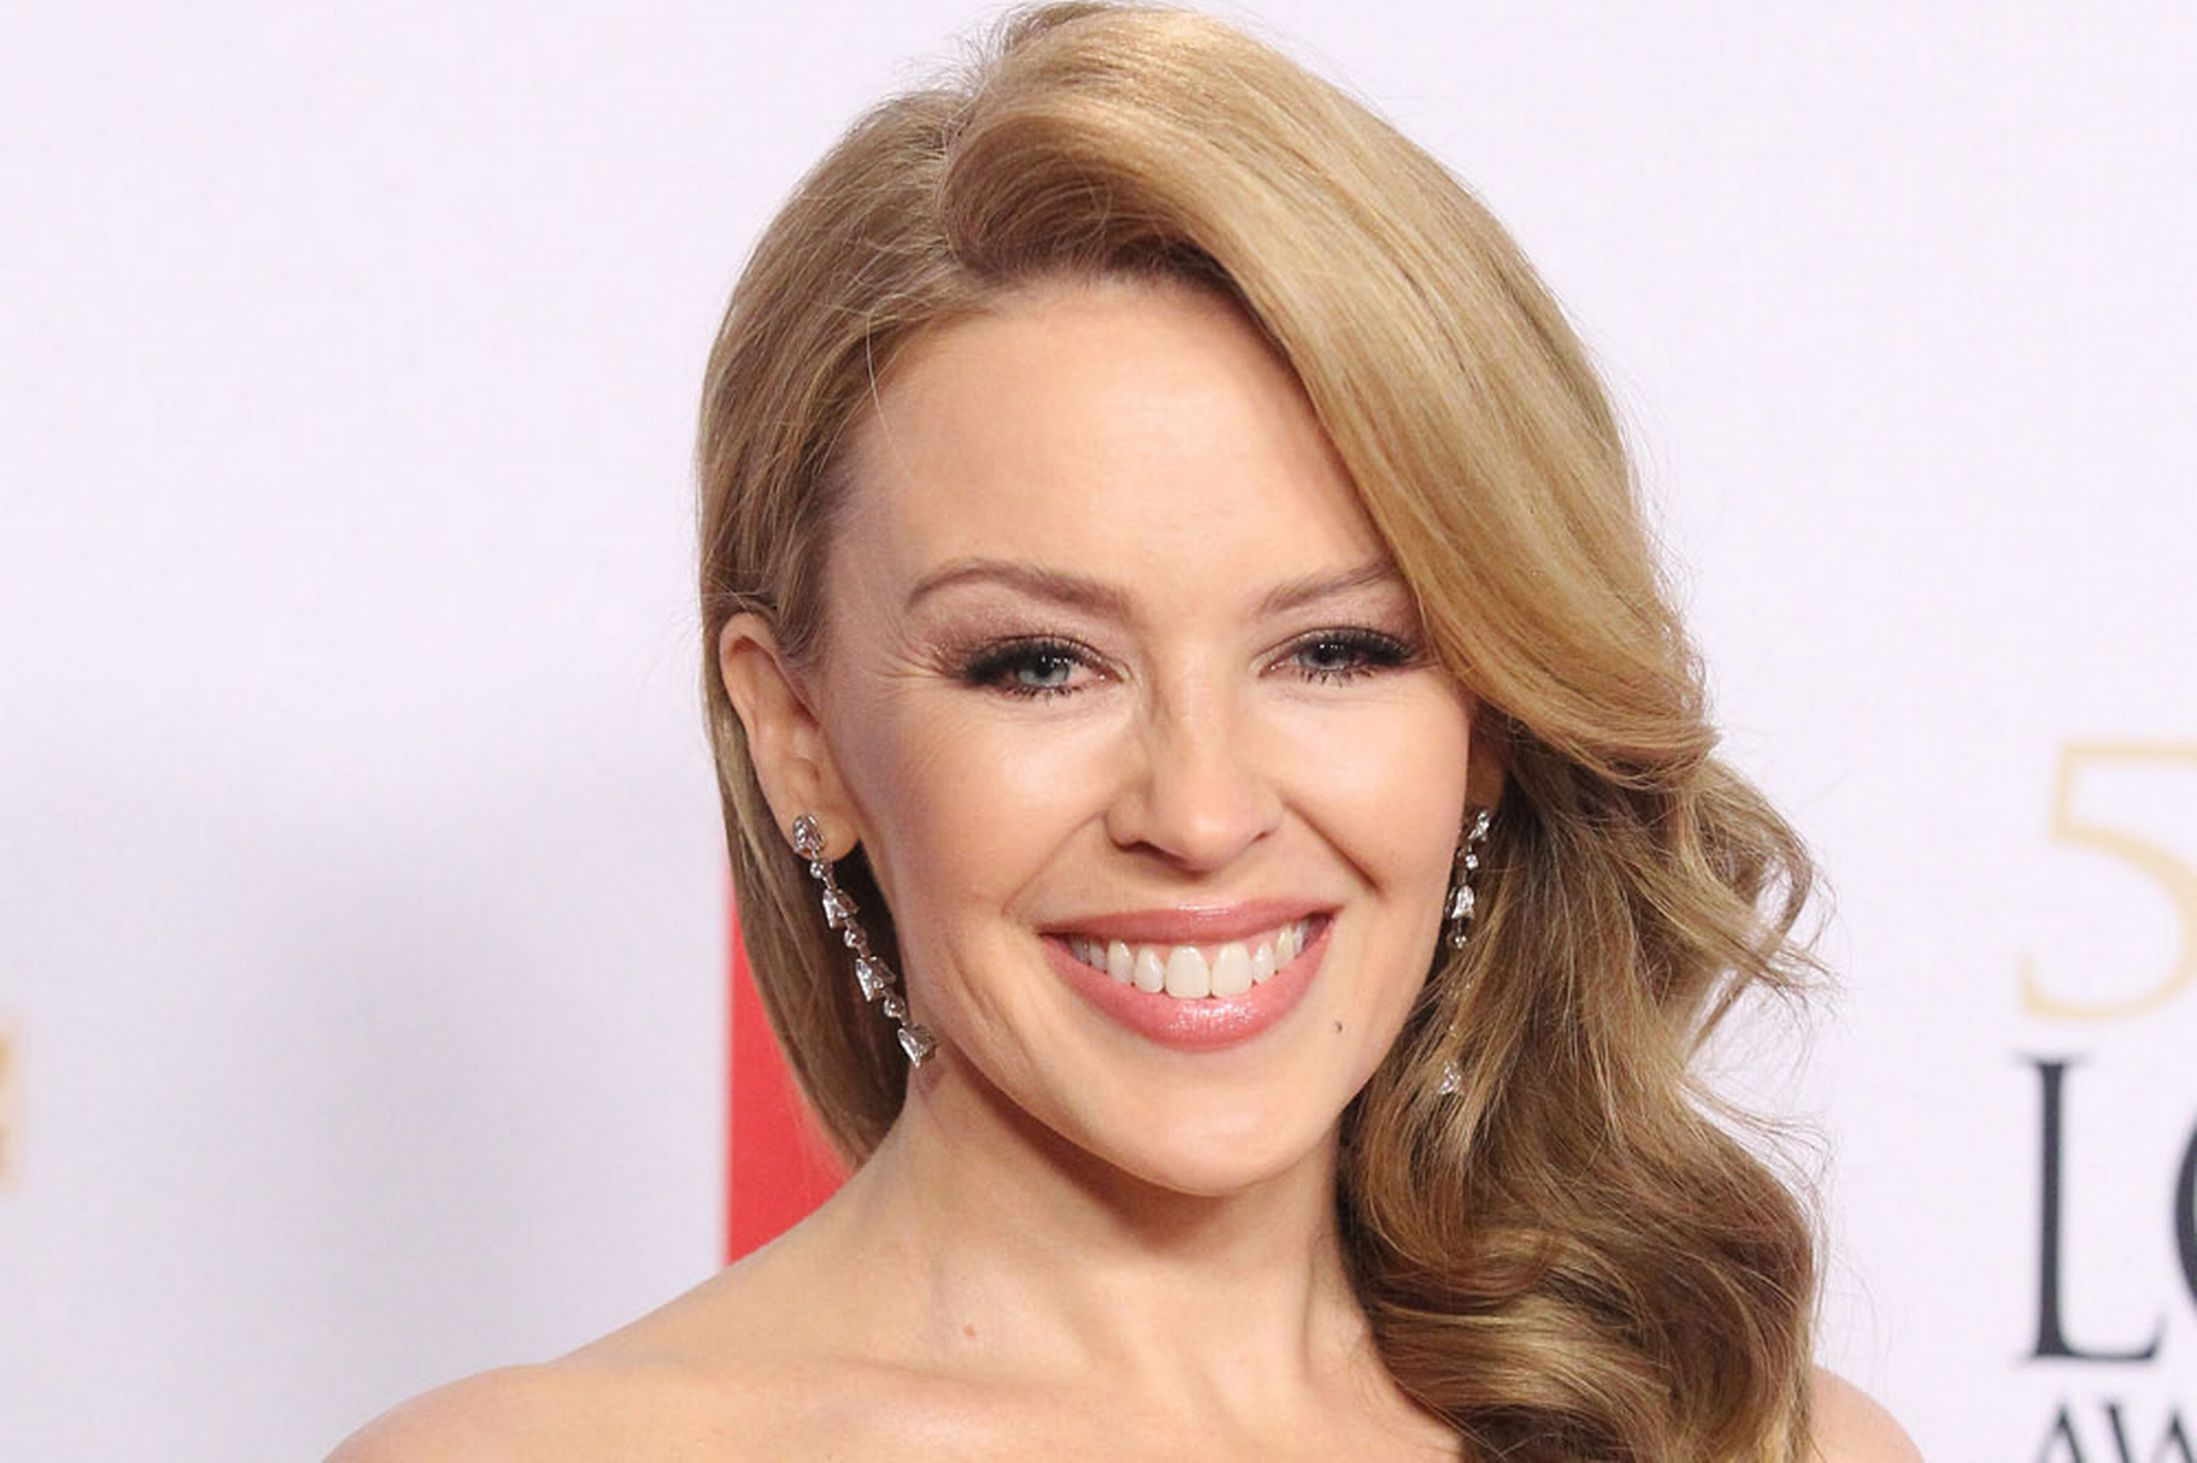 Kylie Minogue, the Australian singer